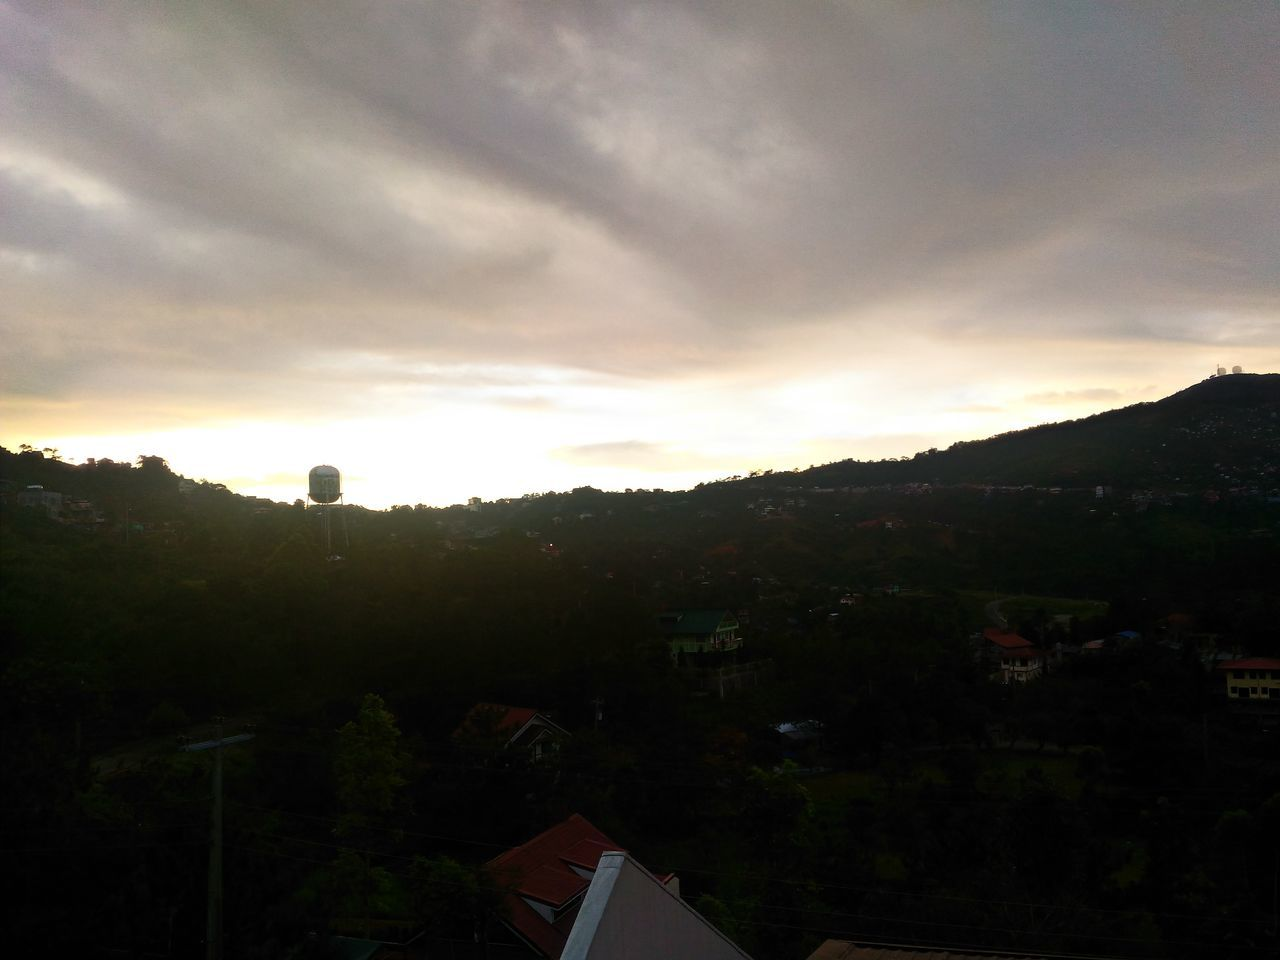 Architecture Baguio City Beauty In Nature Built Structure Cloud - Sky Day Landscape Mountain Nature No People Outdoors Scenics Sky Sunrise Sunset Tranquility Tree